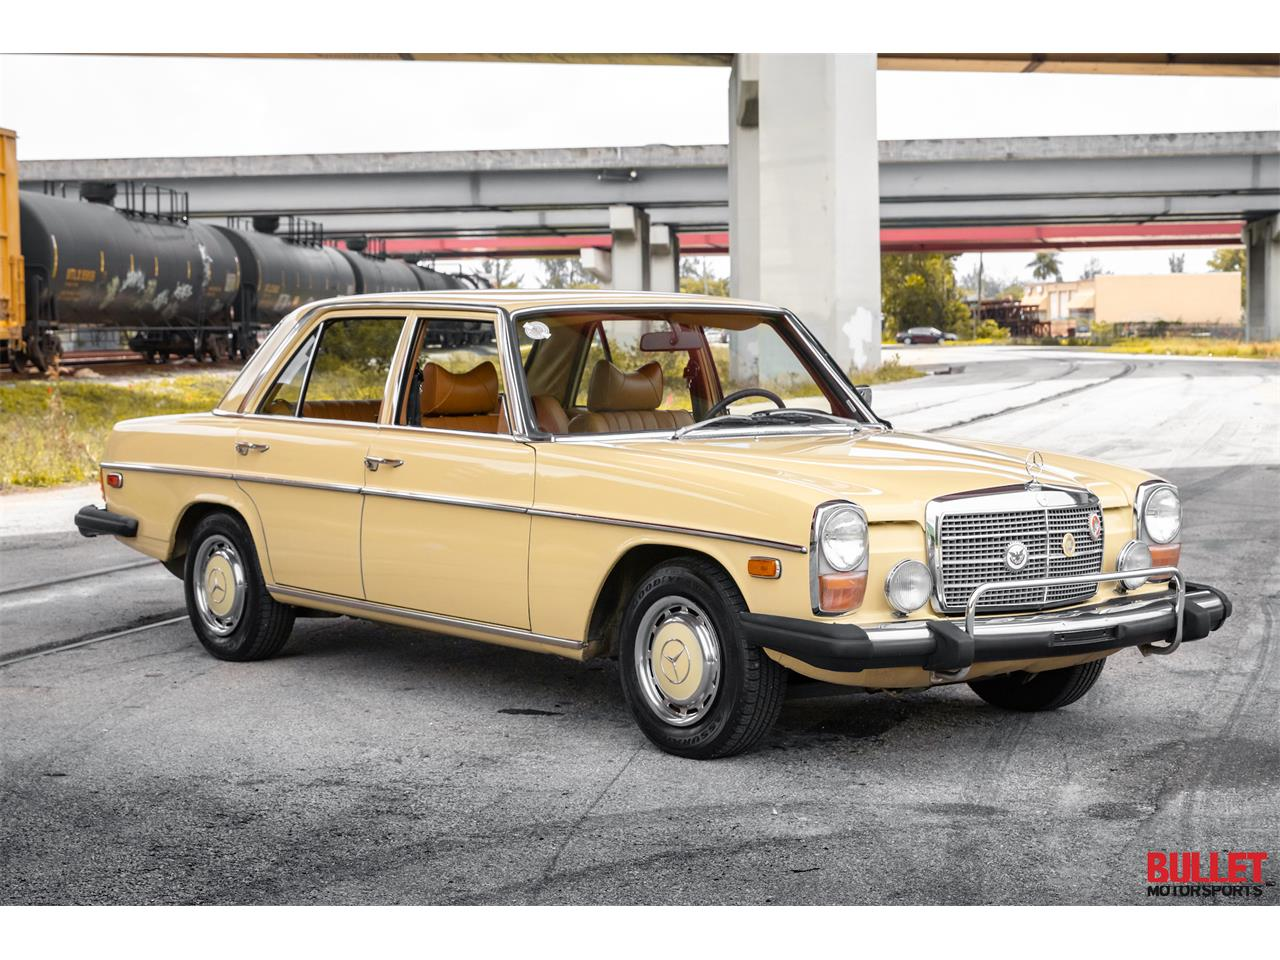 Large Picture of 1976 Mercedes-Benz 300D located in Fort Lauderdale Florida - $9,000.00 Offered by Bullet Motorsports Inc - PXPA